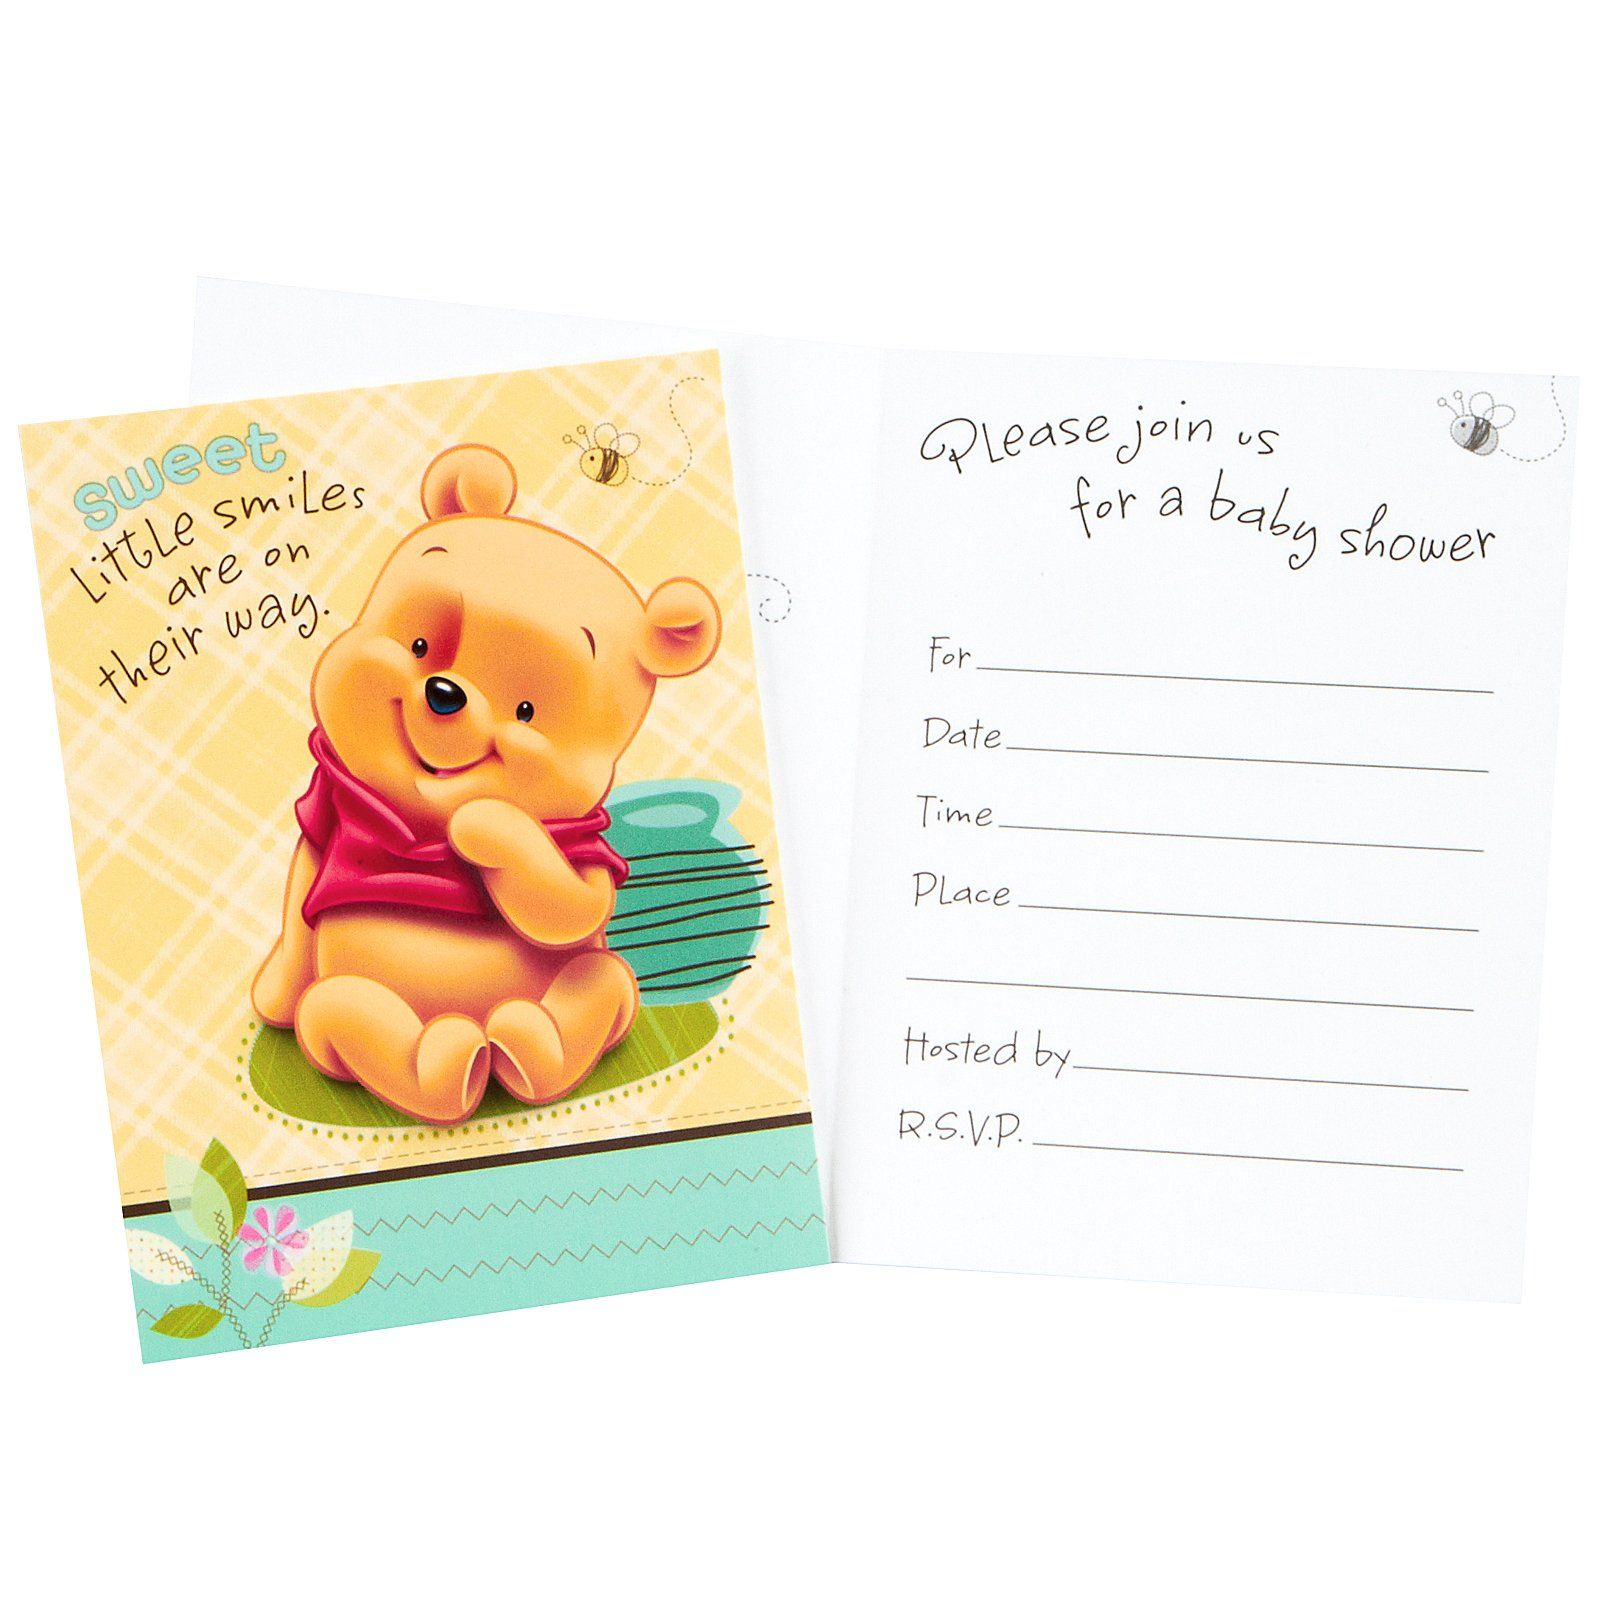 Download Now Free Template Winnie The Pooh Design For Your Baby Shower Sunshine Baby Shower Invitations My Little Sunshine Baby Shower Baby Shower Invitations